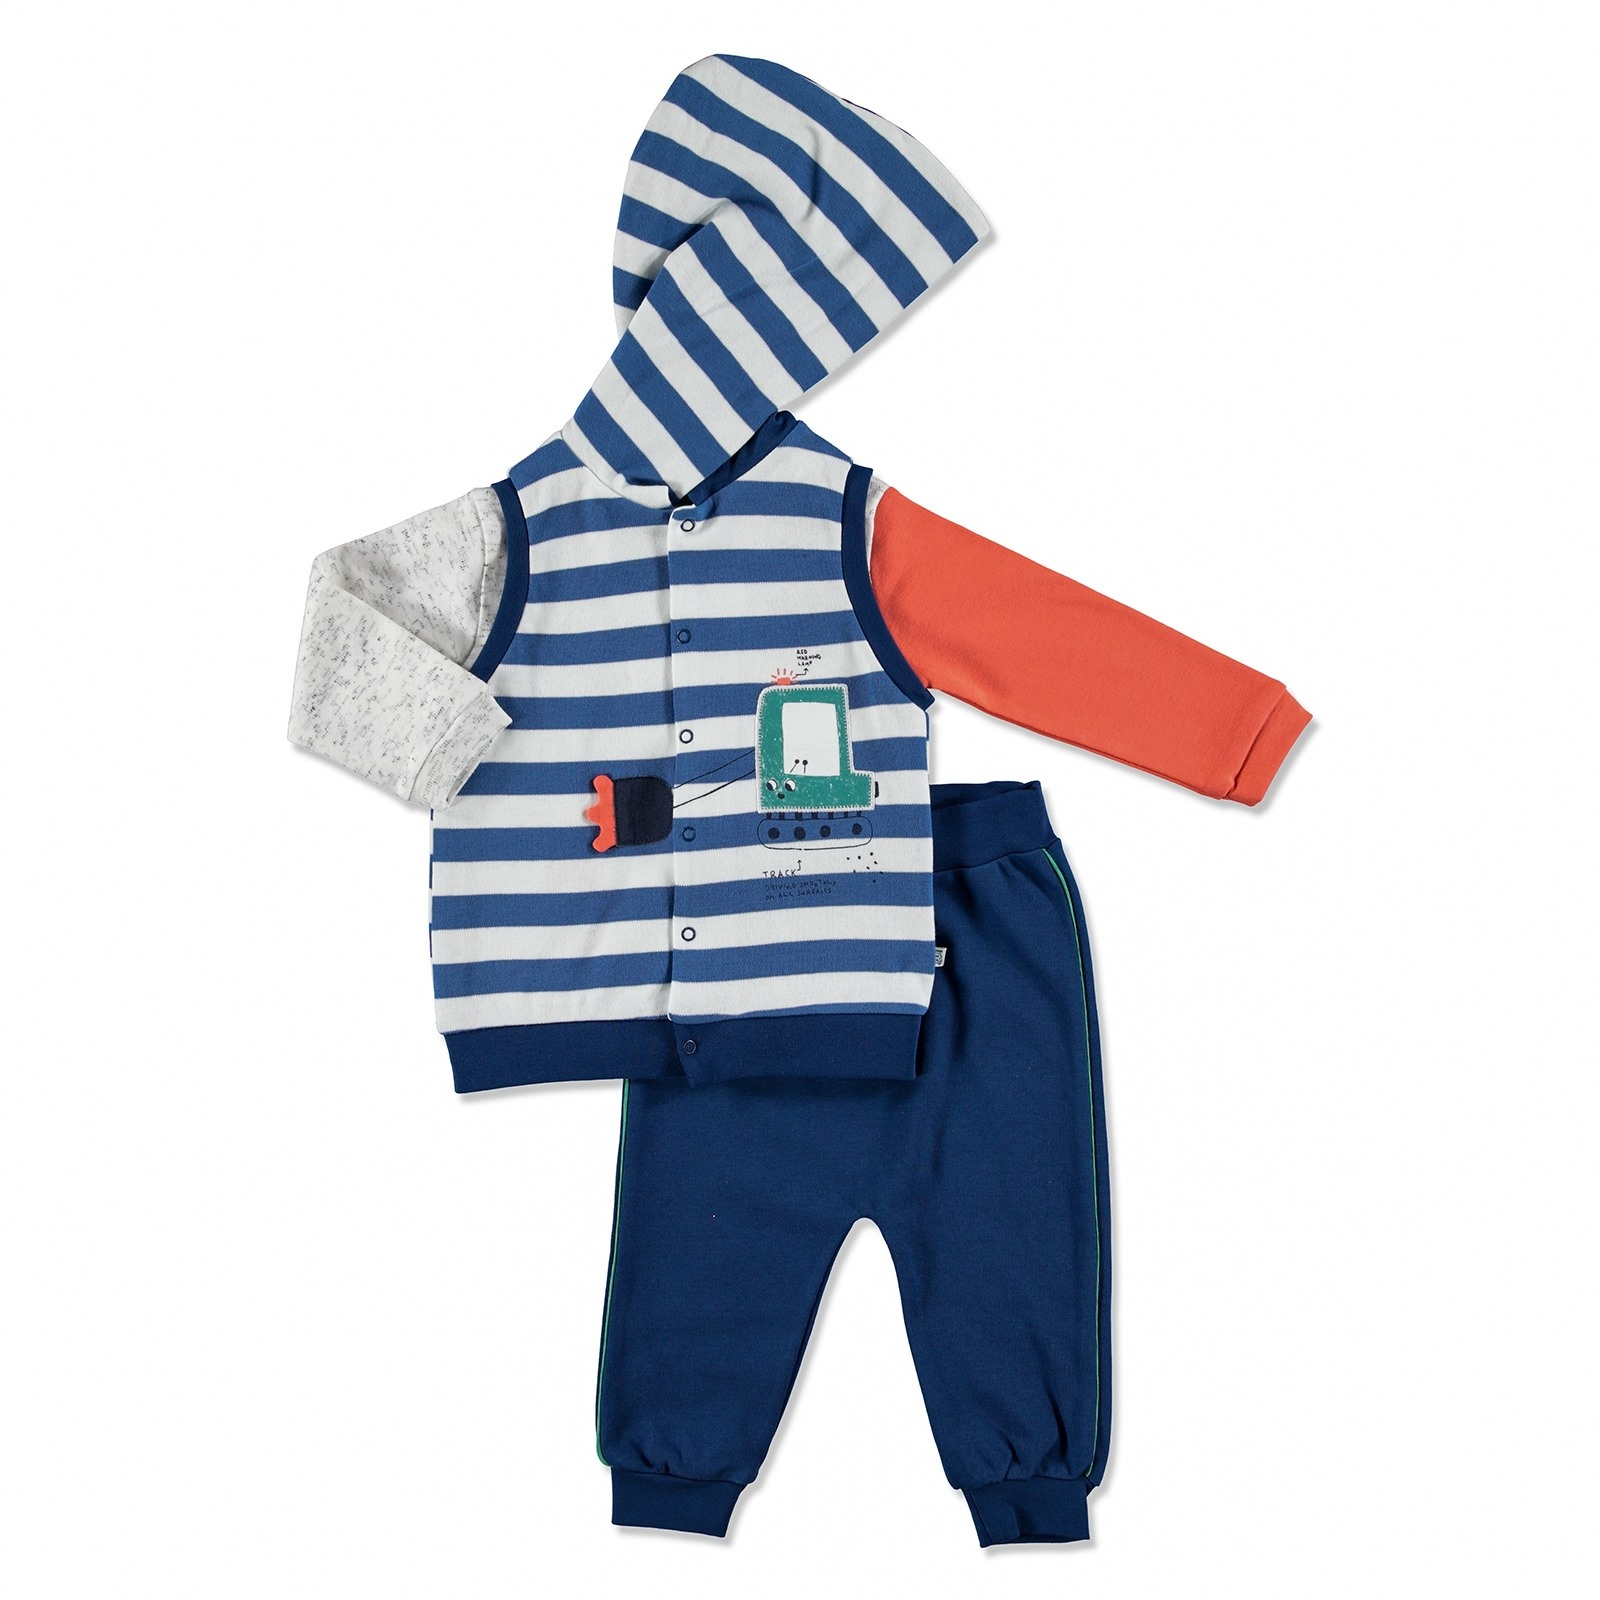 Ebebek Mymio Summer Baby Boy Scoop Sweatshirt Vest Pant 2 Pcs Set